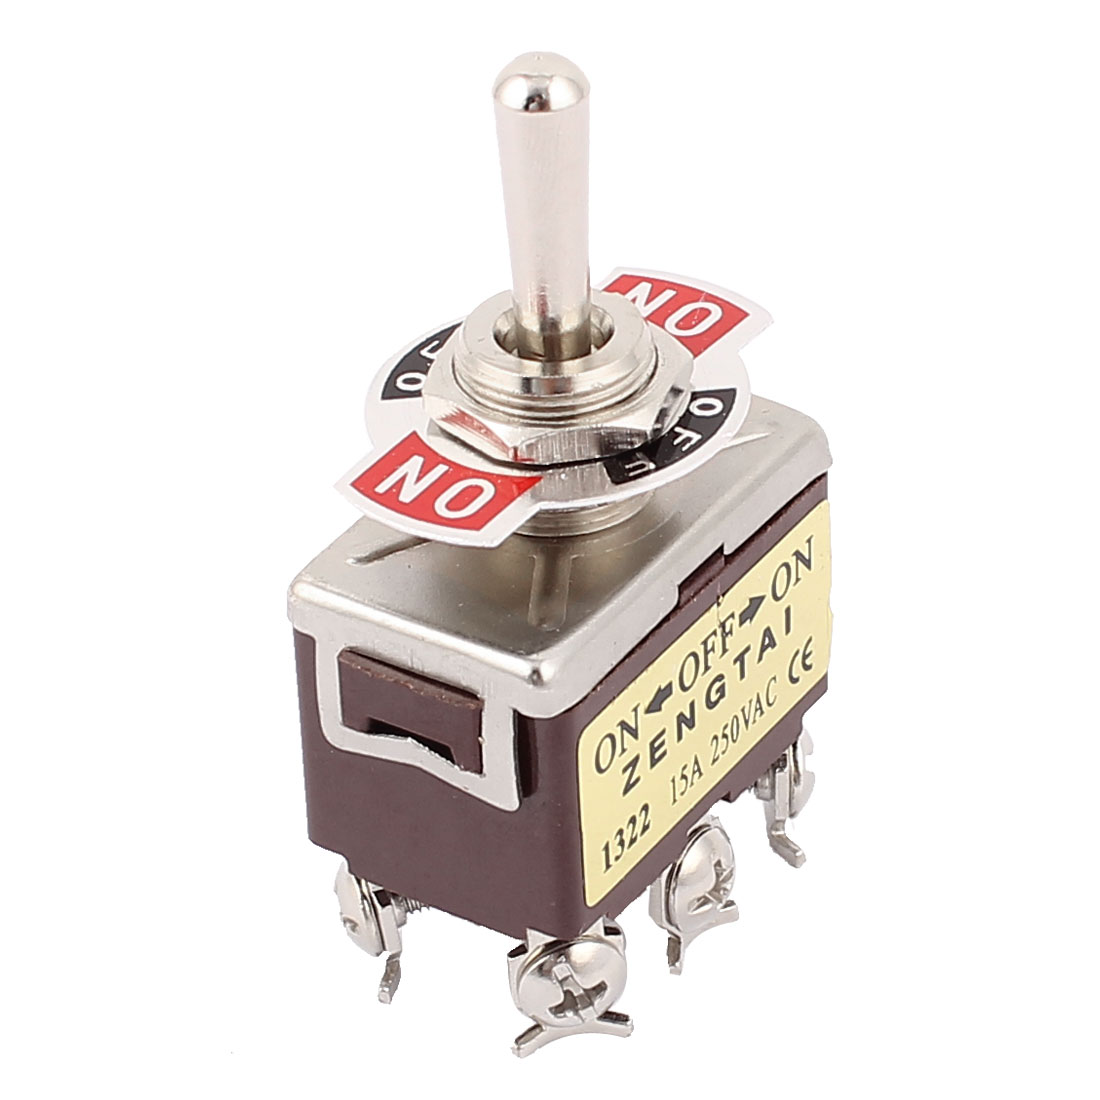 AC 250V/15A 6 Screw Terminals ON/OFF/ON 3 Position DPDT Toggle Switch